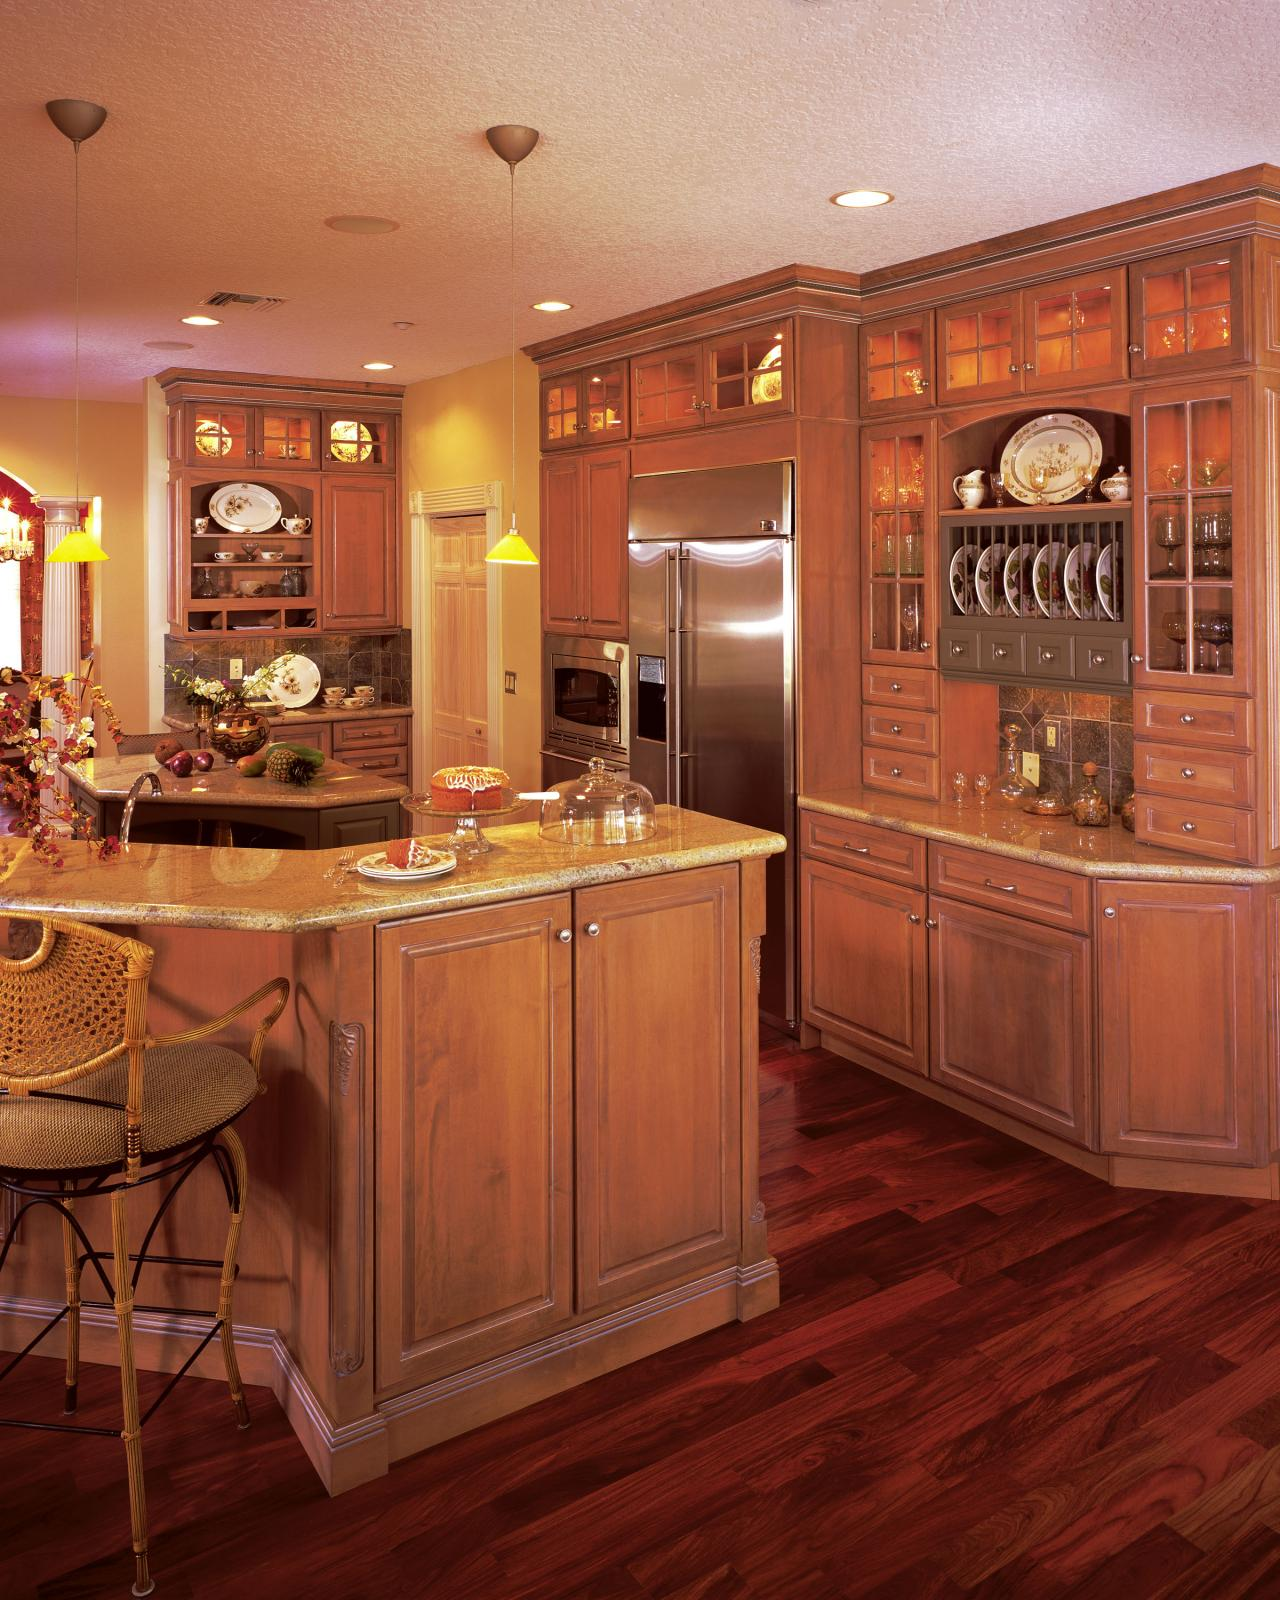 Dynasty Omega Kitchen Cabinets: Graham Interiors, LLC